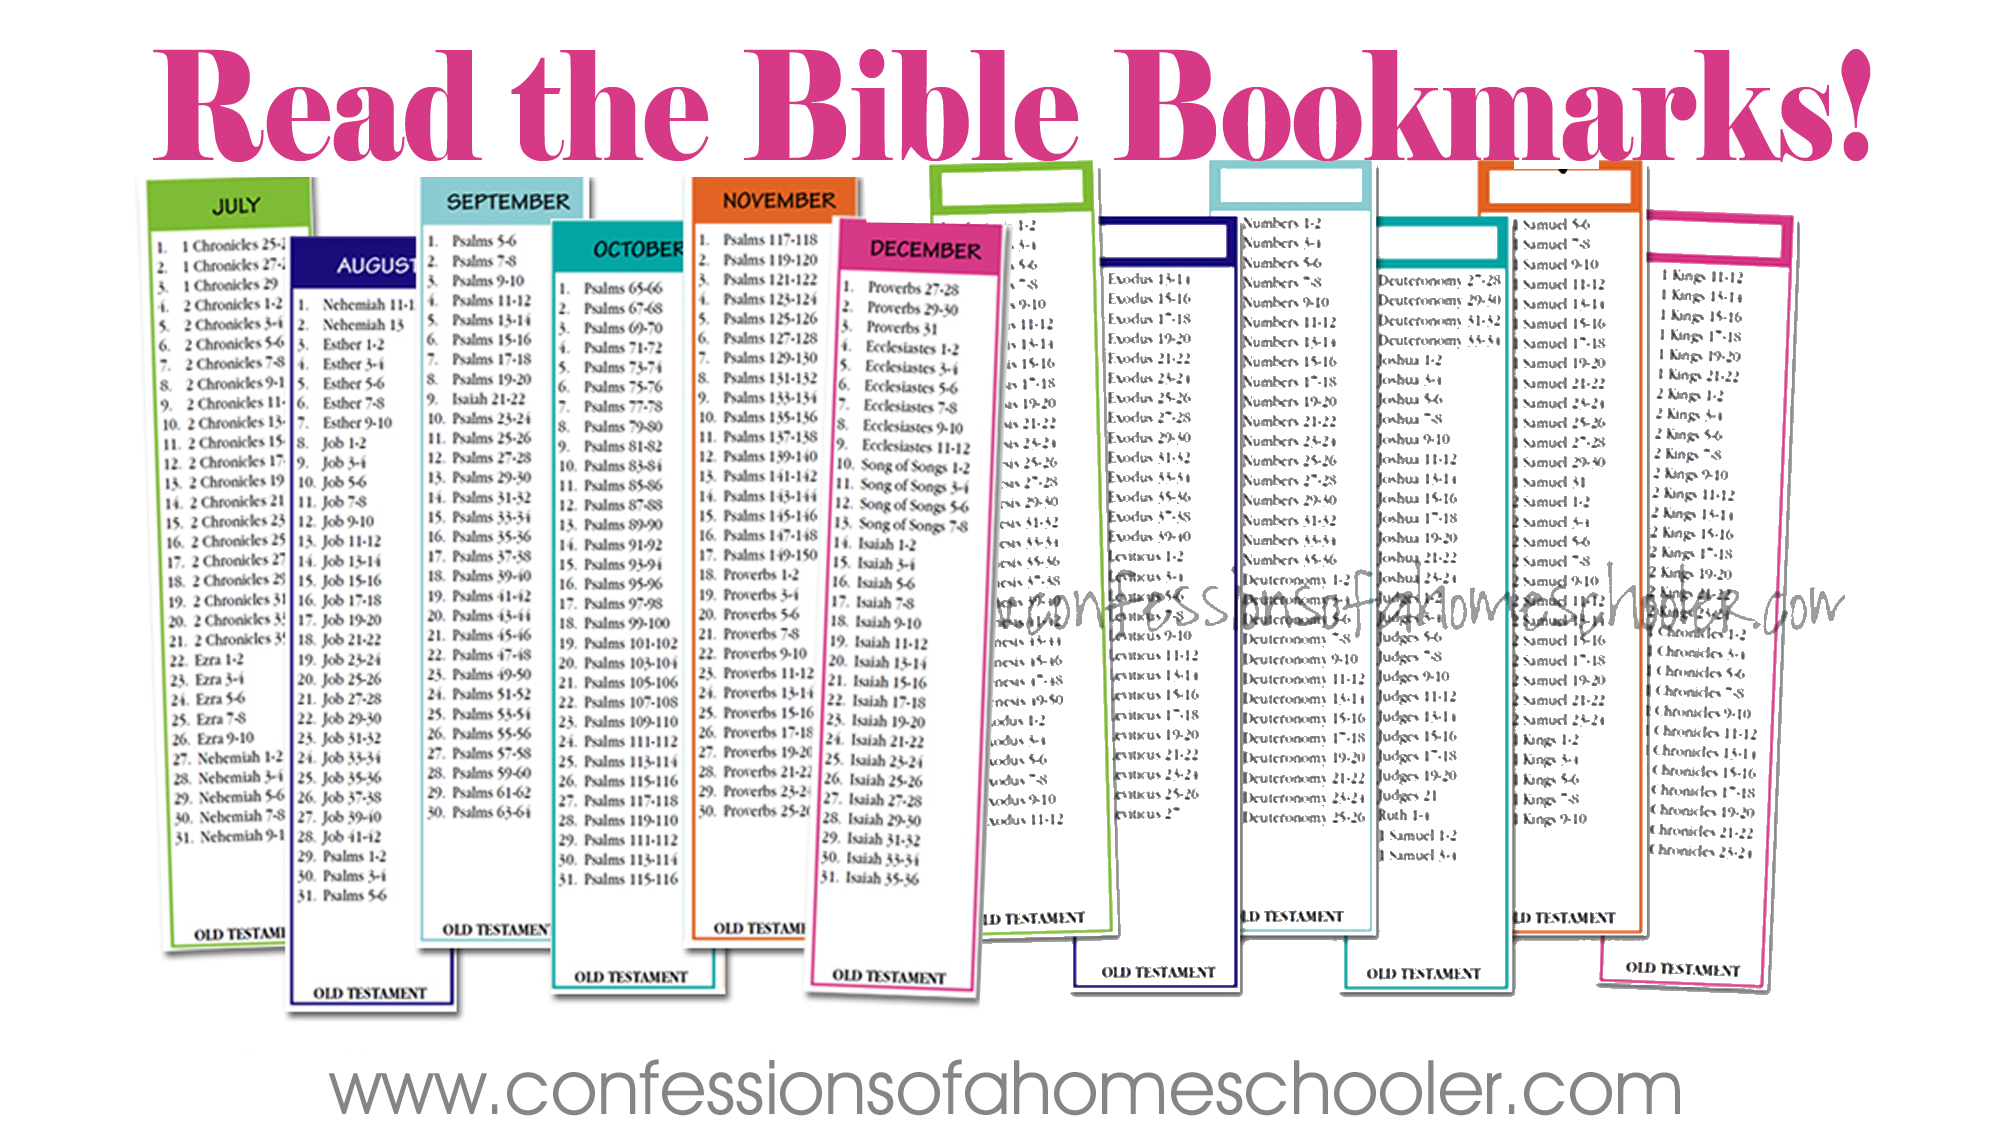 Read the Bible in Two Years Bookmarks